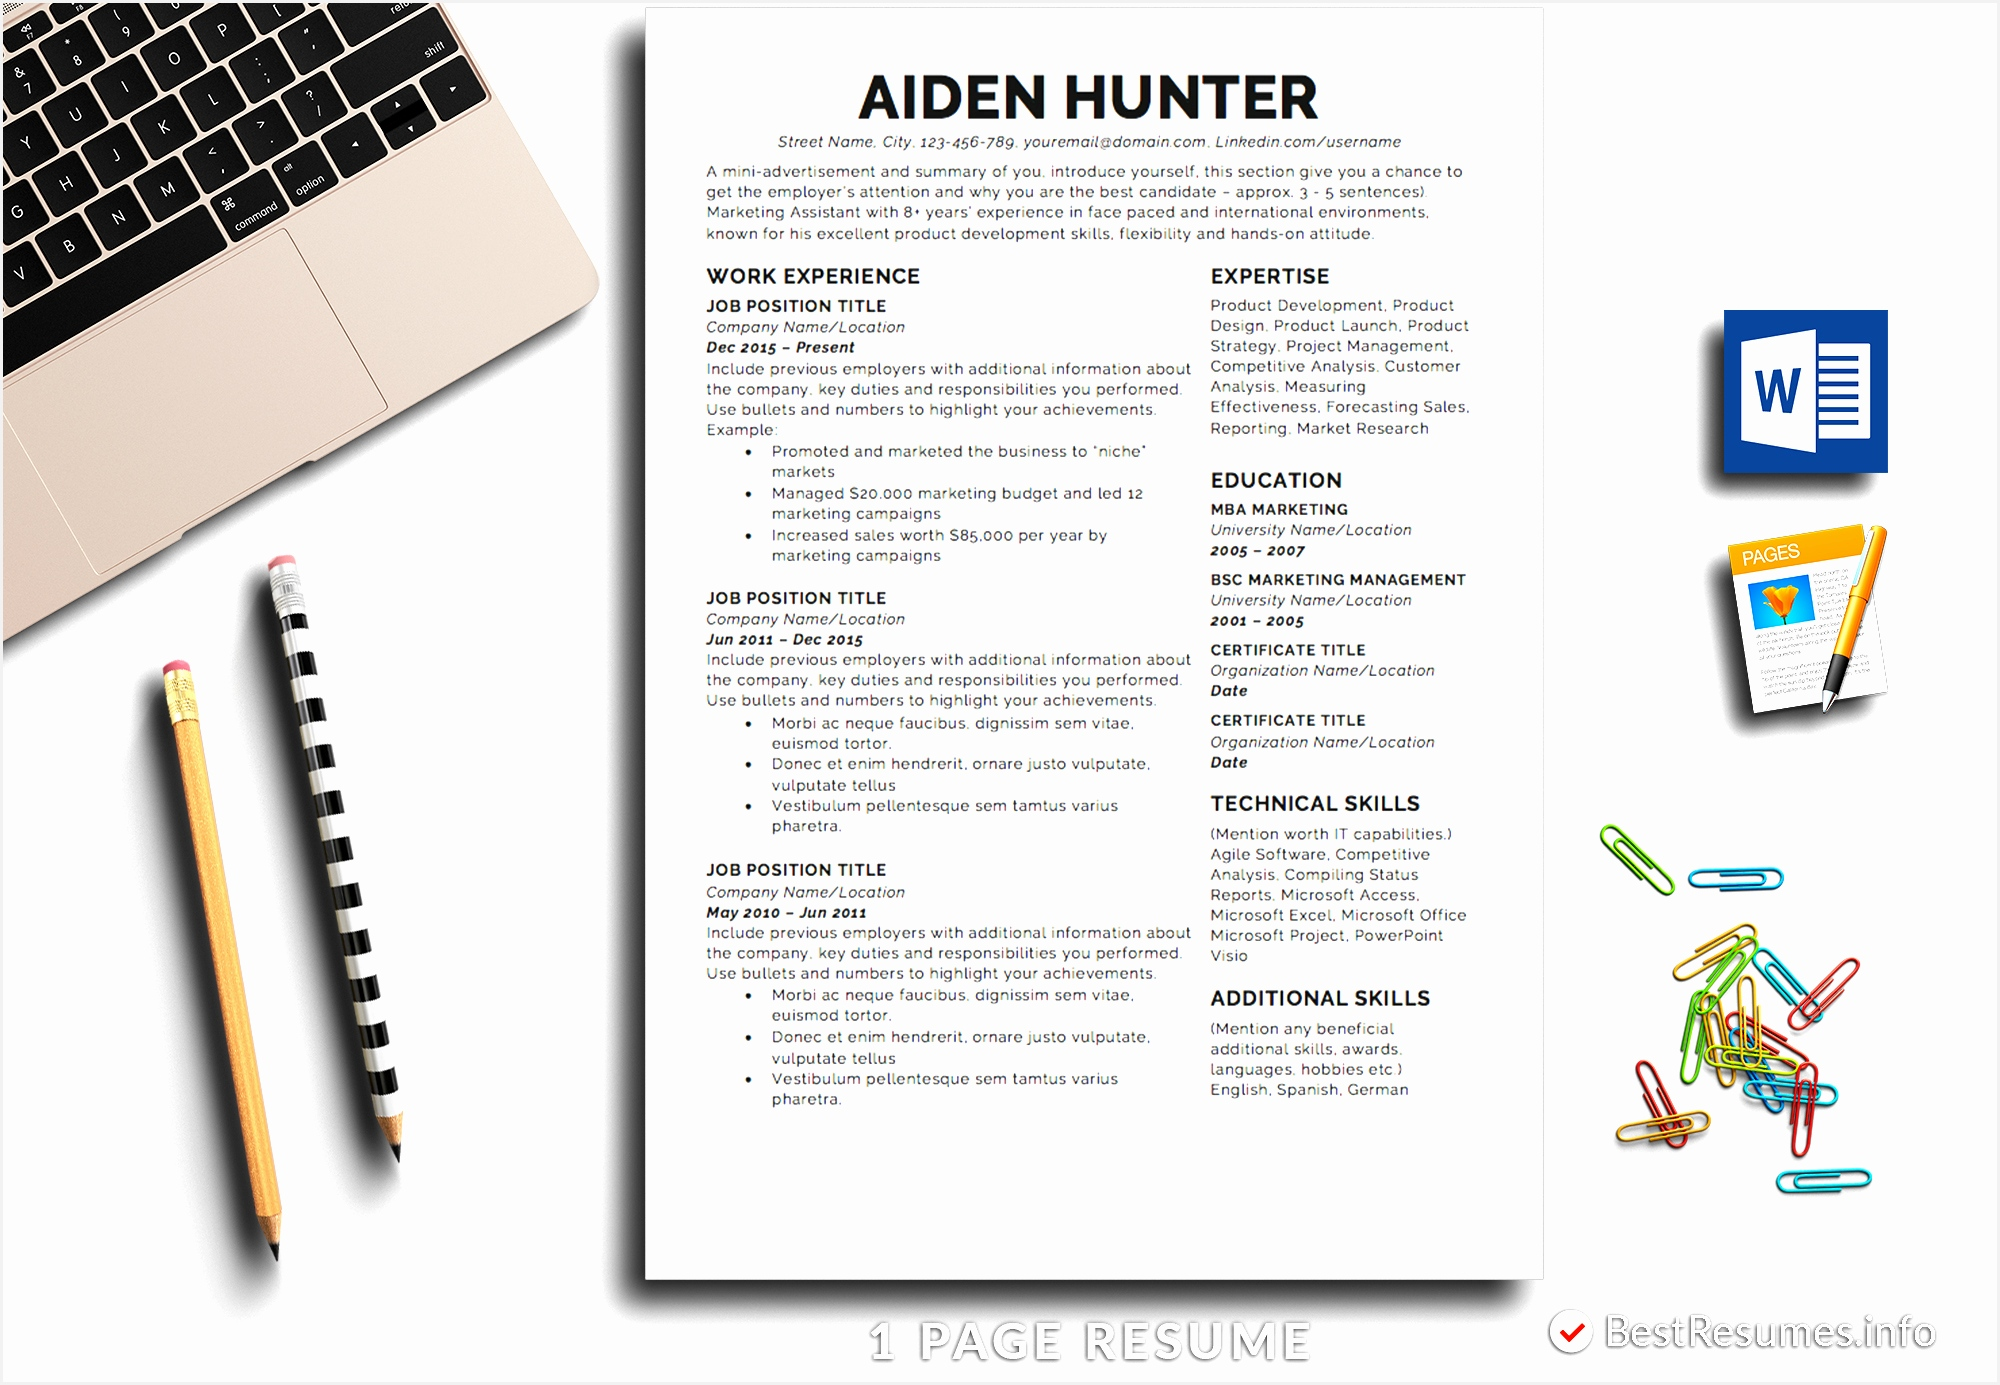 Resume Template Aiden Hunter 1 Page Professional Resume For Word and Pages Mac13852000